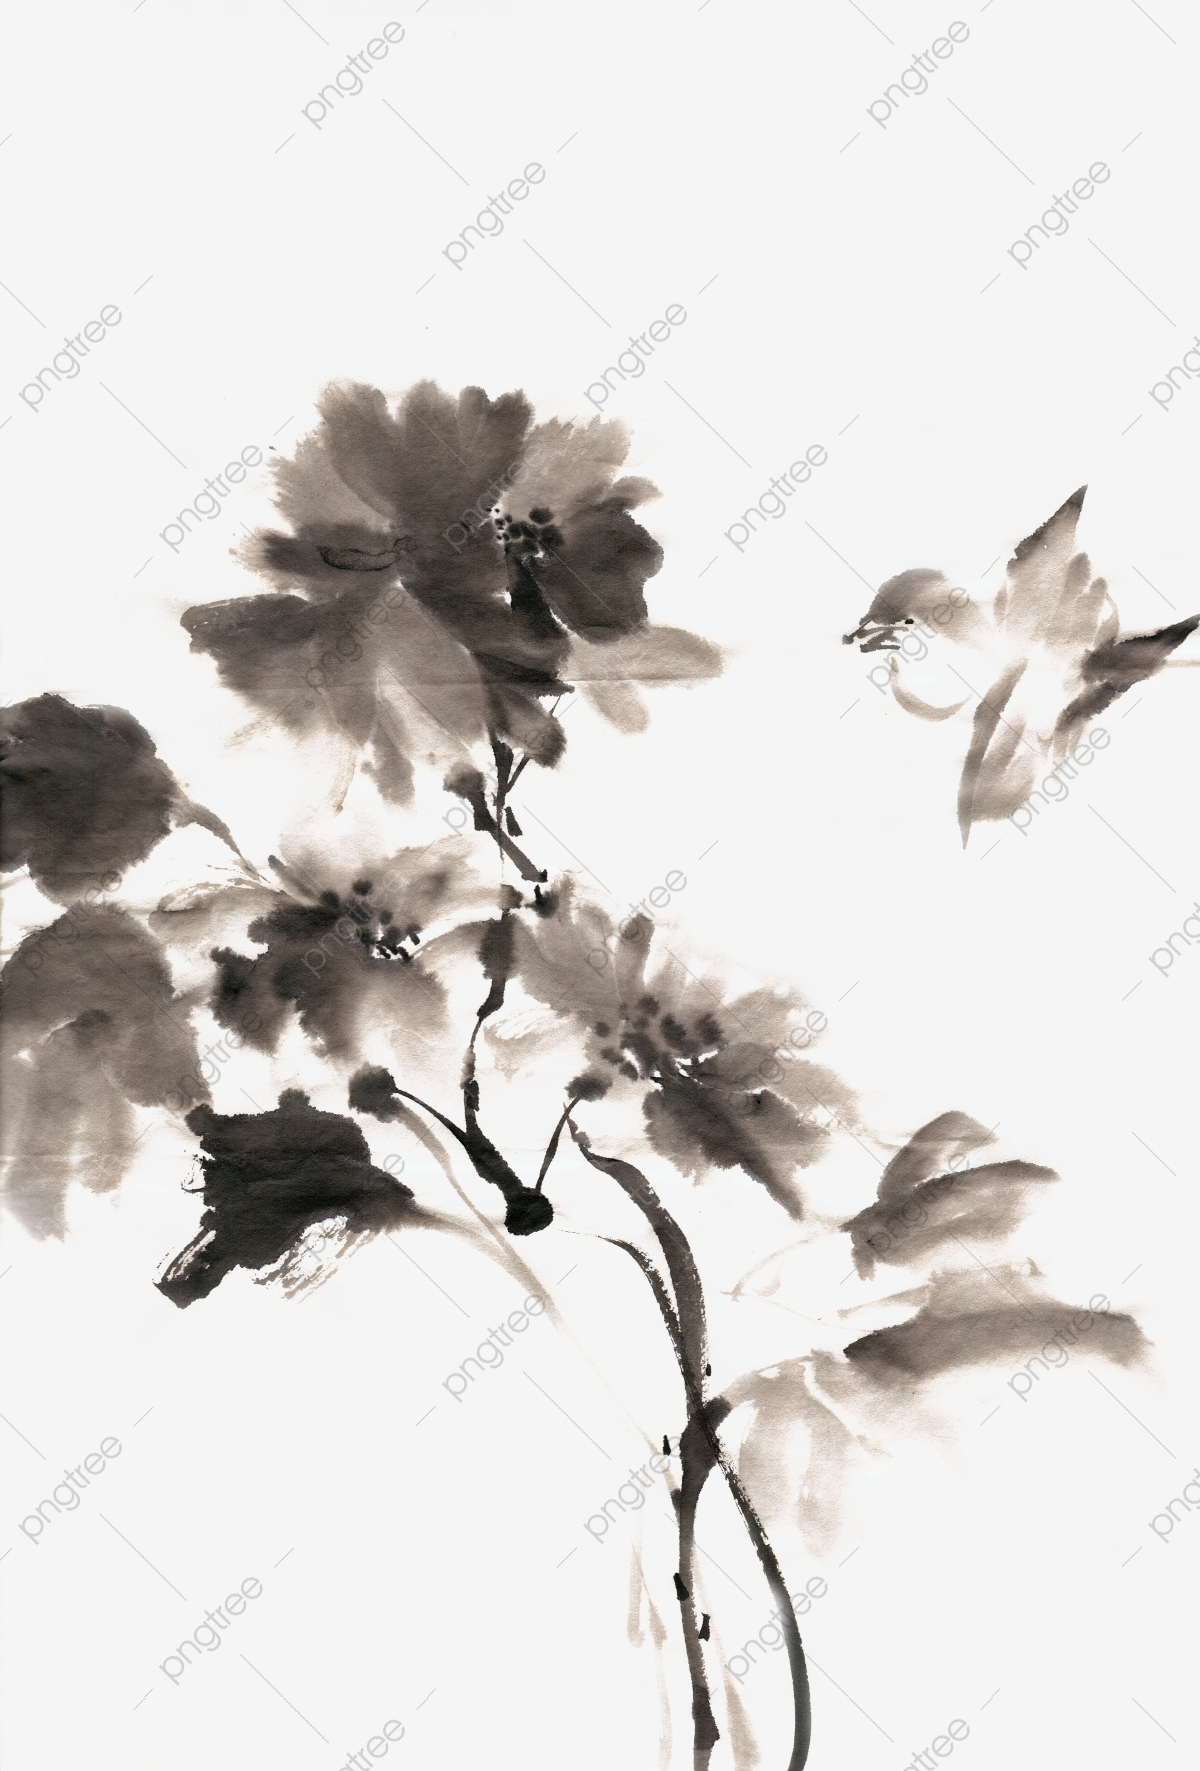 Ink Traditional Chinese Painting Hand Painted Flower And Bird.